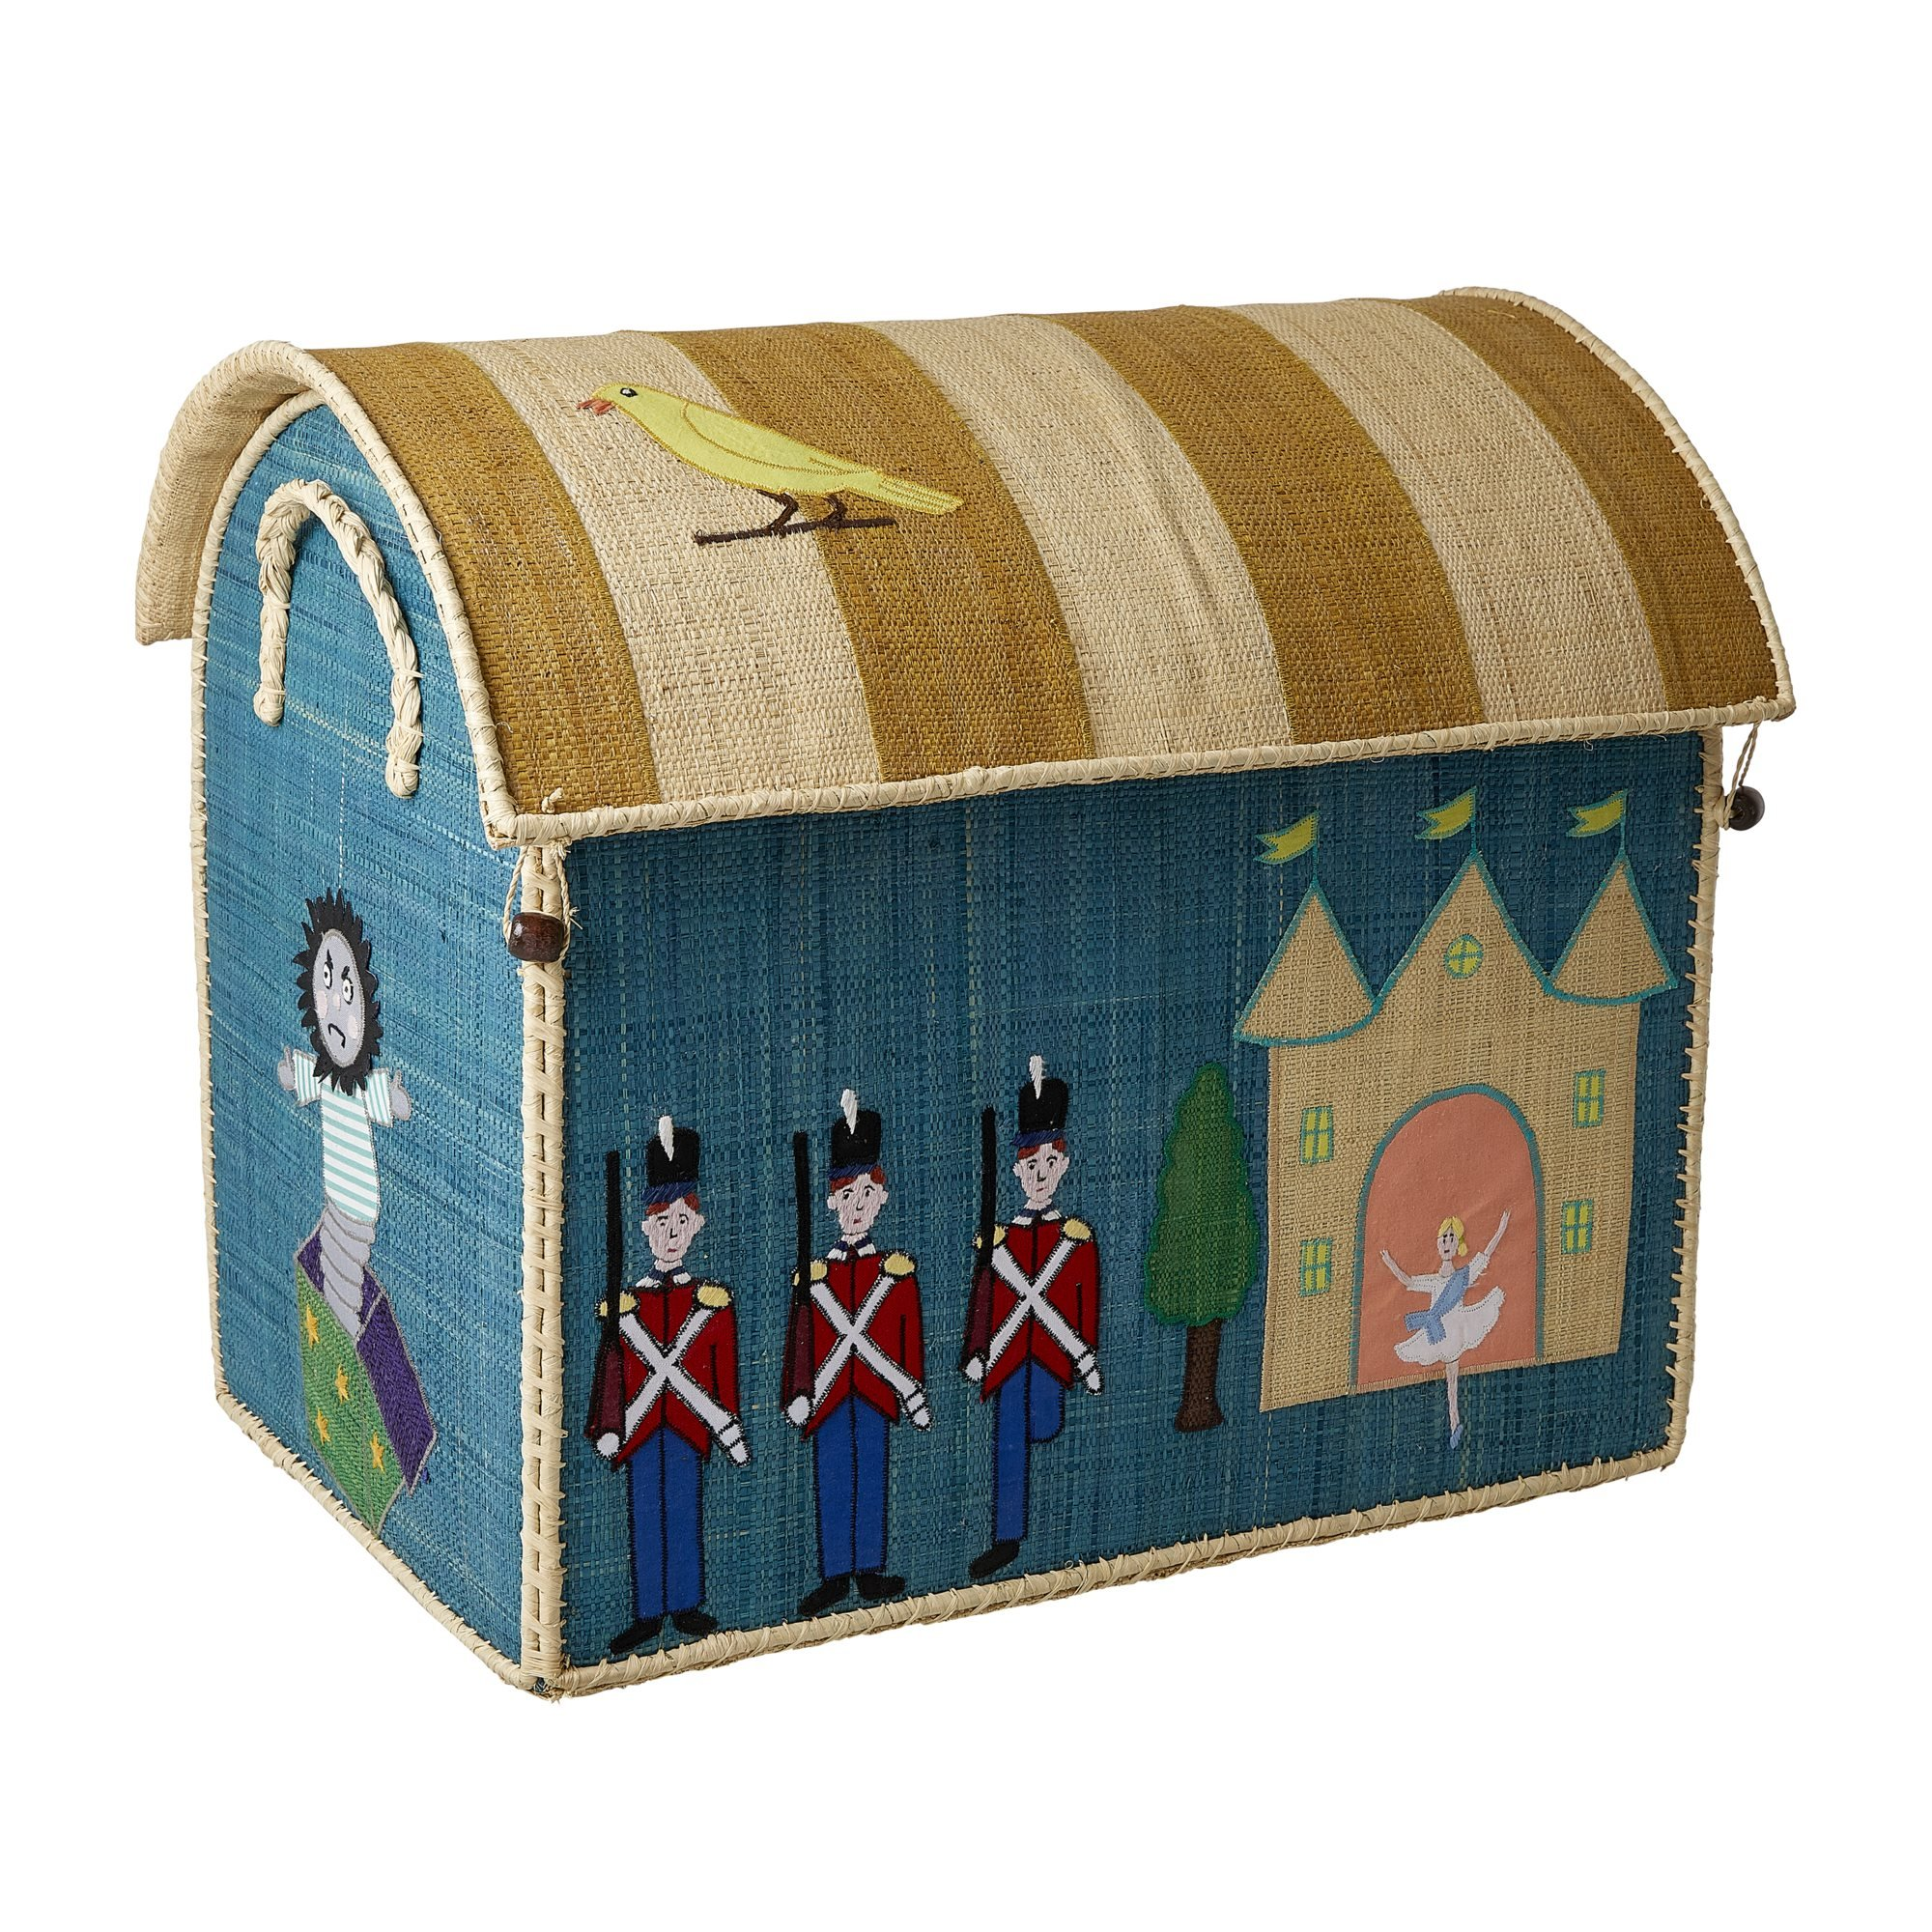 Rice Large Set of 3 Toy Baskets with Tin Soldier Theme